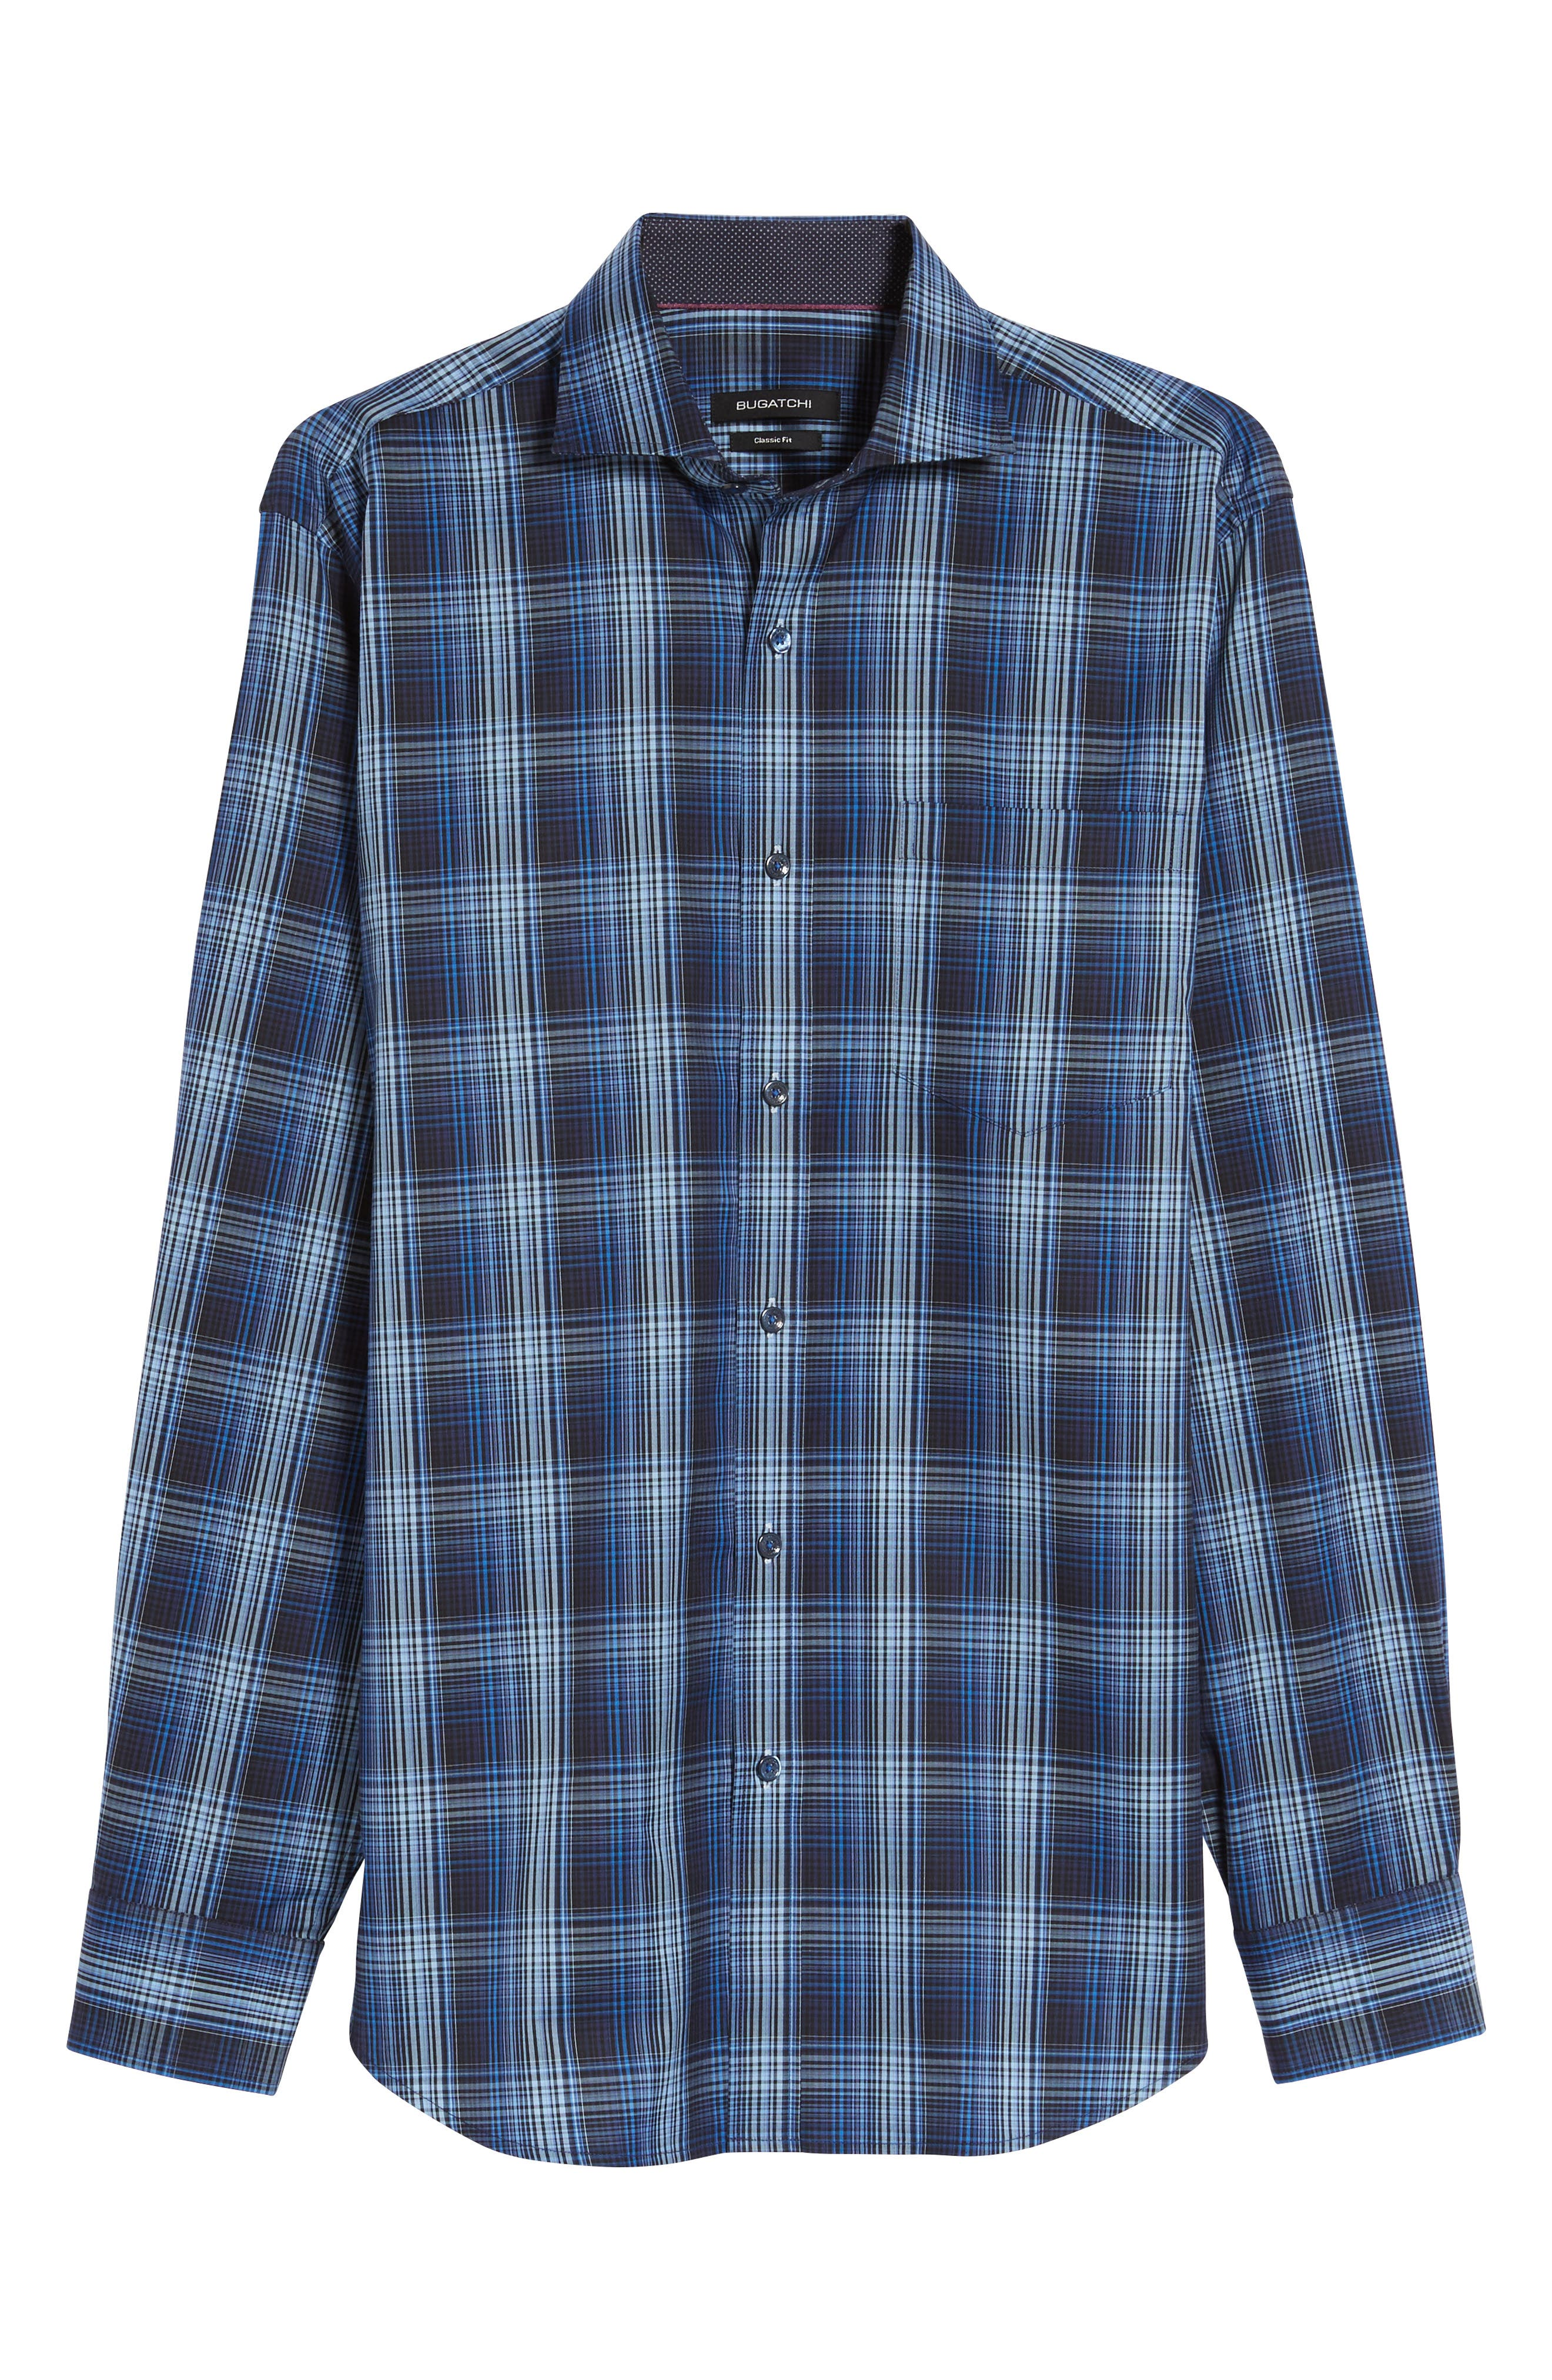 Classic Fit Plaid Sport Shirt,                             Alternate thumbnail 6, color,                             Midnight